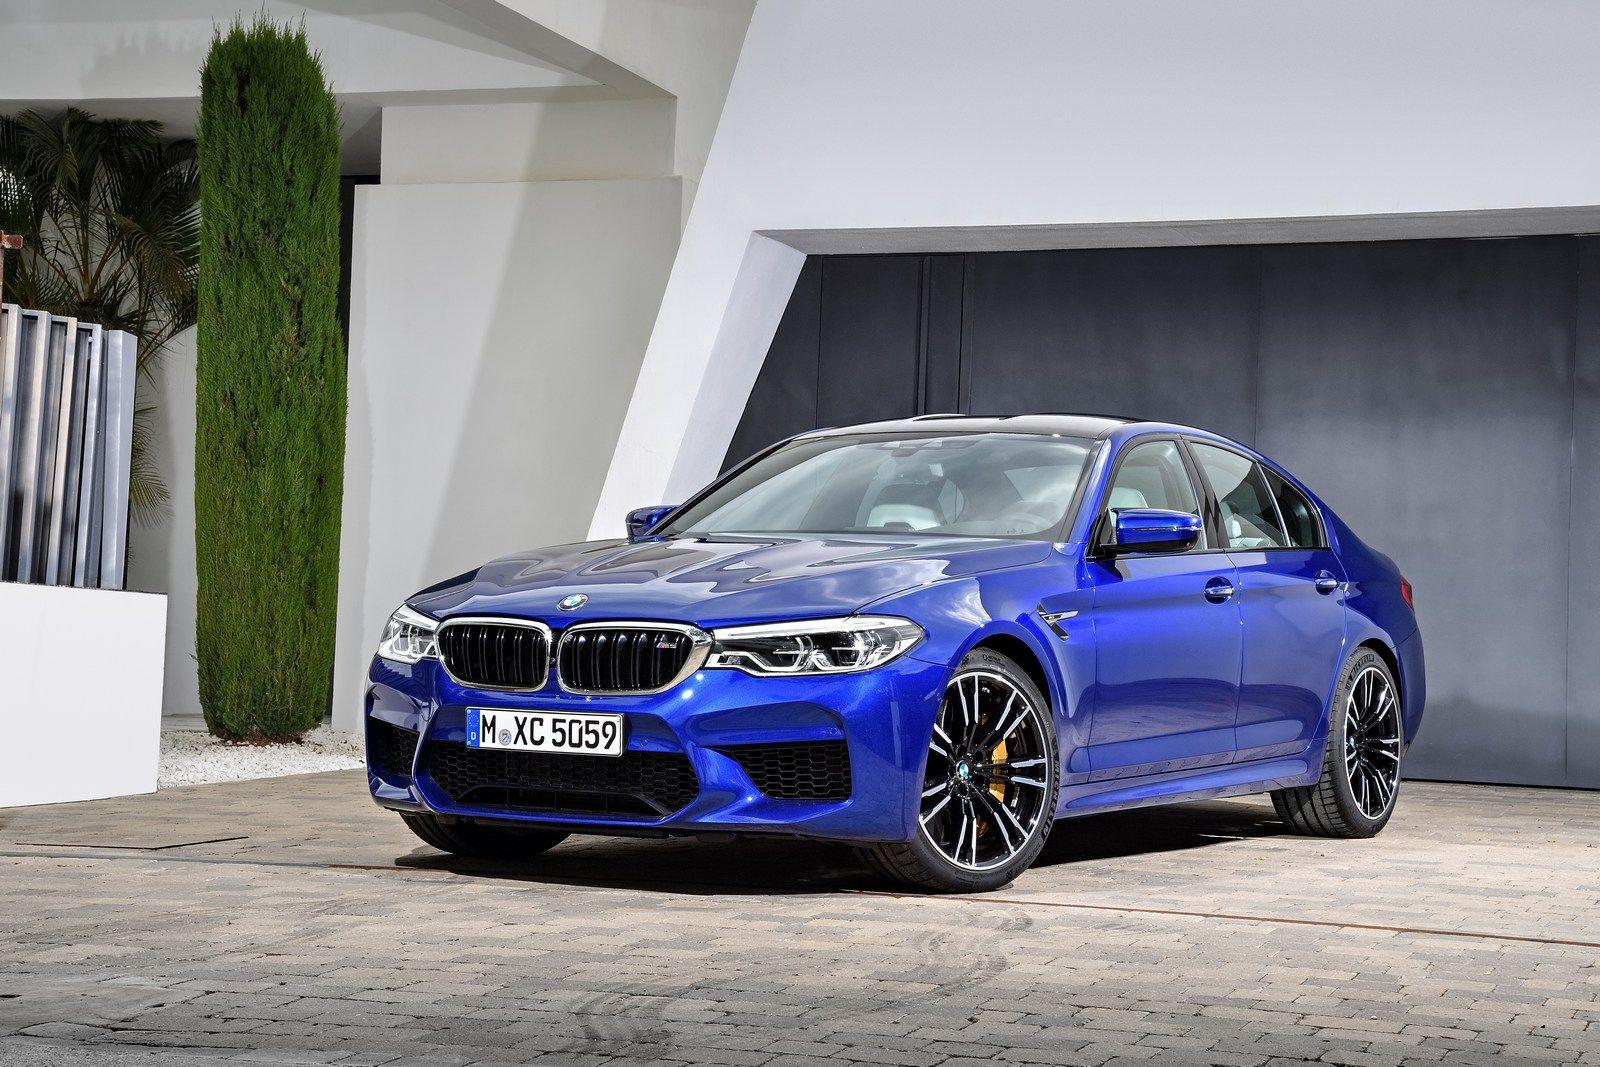 2018 Bmw M5 Is The Fastest And Most Expensive Yet At 102 600 In The U S Carscoops Bmw M5 Bmw Bmw Cars